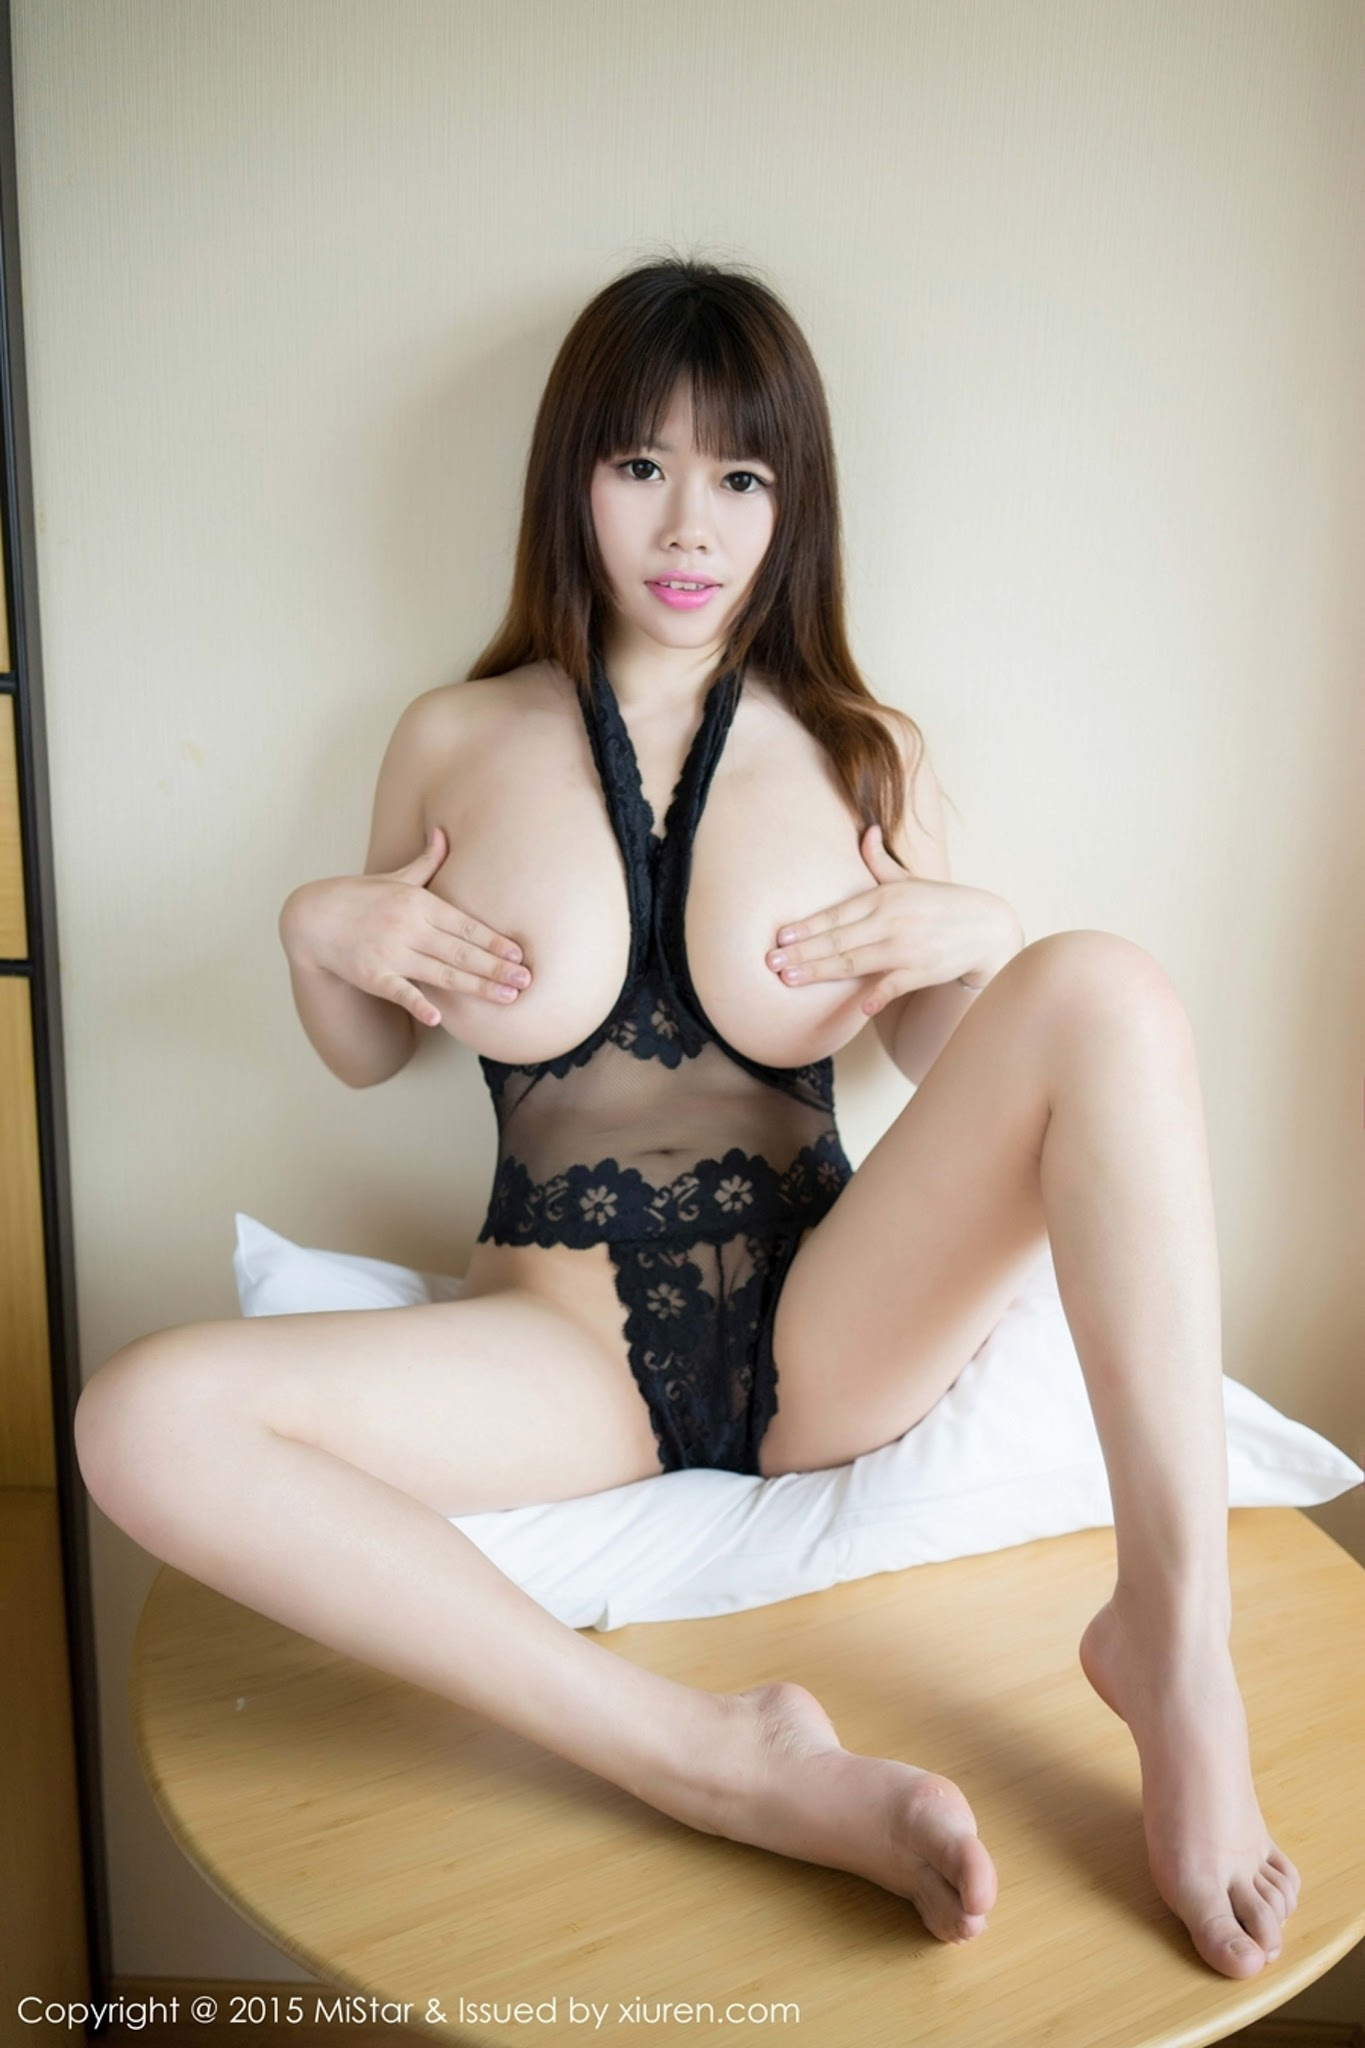 Korean girl nude - 92 part 4